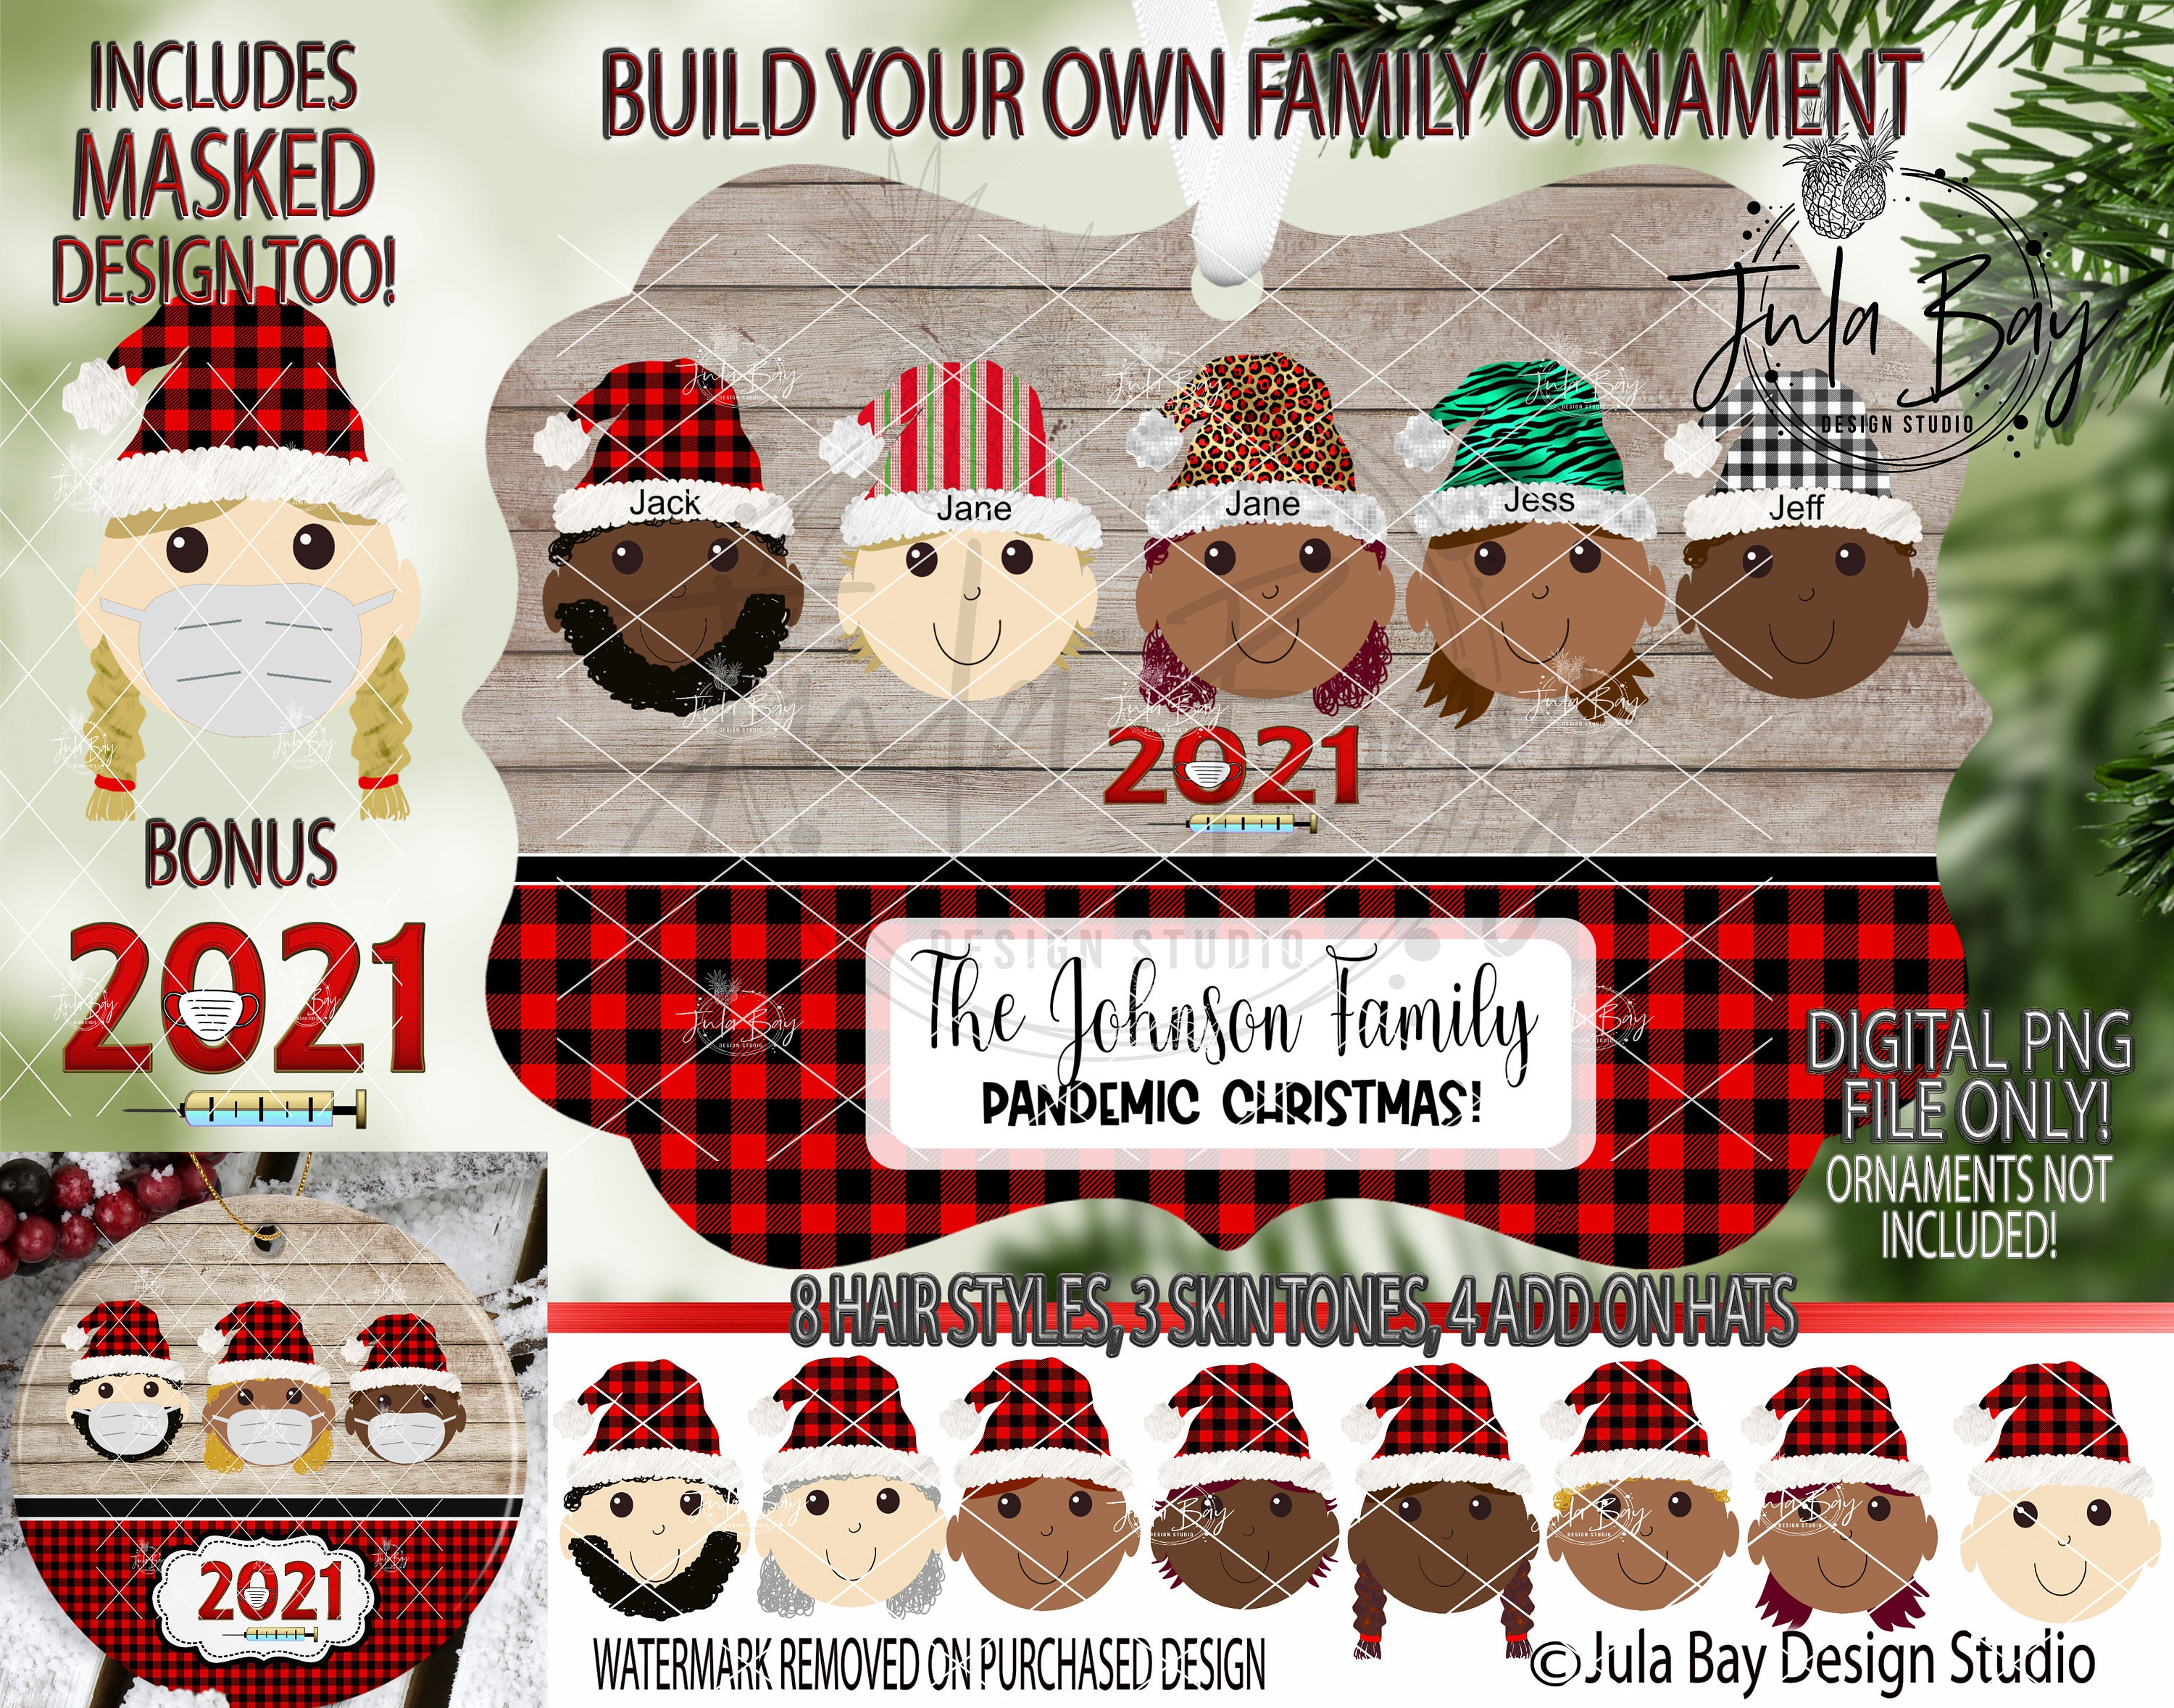 20 Christmas Ornament PNG Multicultural Elf Family Elves with Masks PNG  Skin Tones sublimation design Pandemic png Customizable Covid